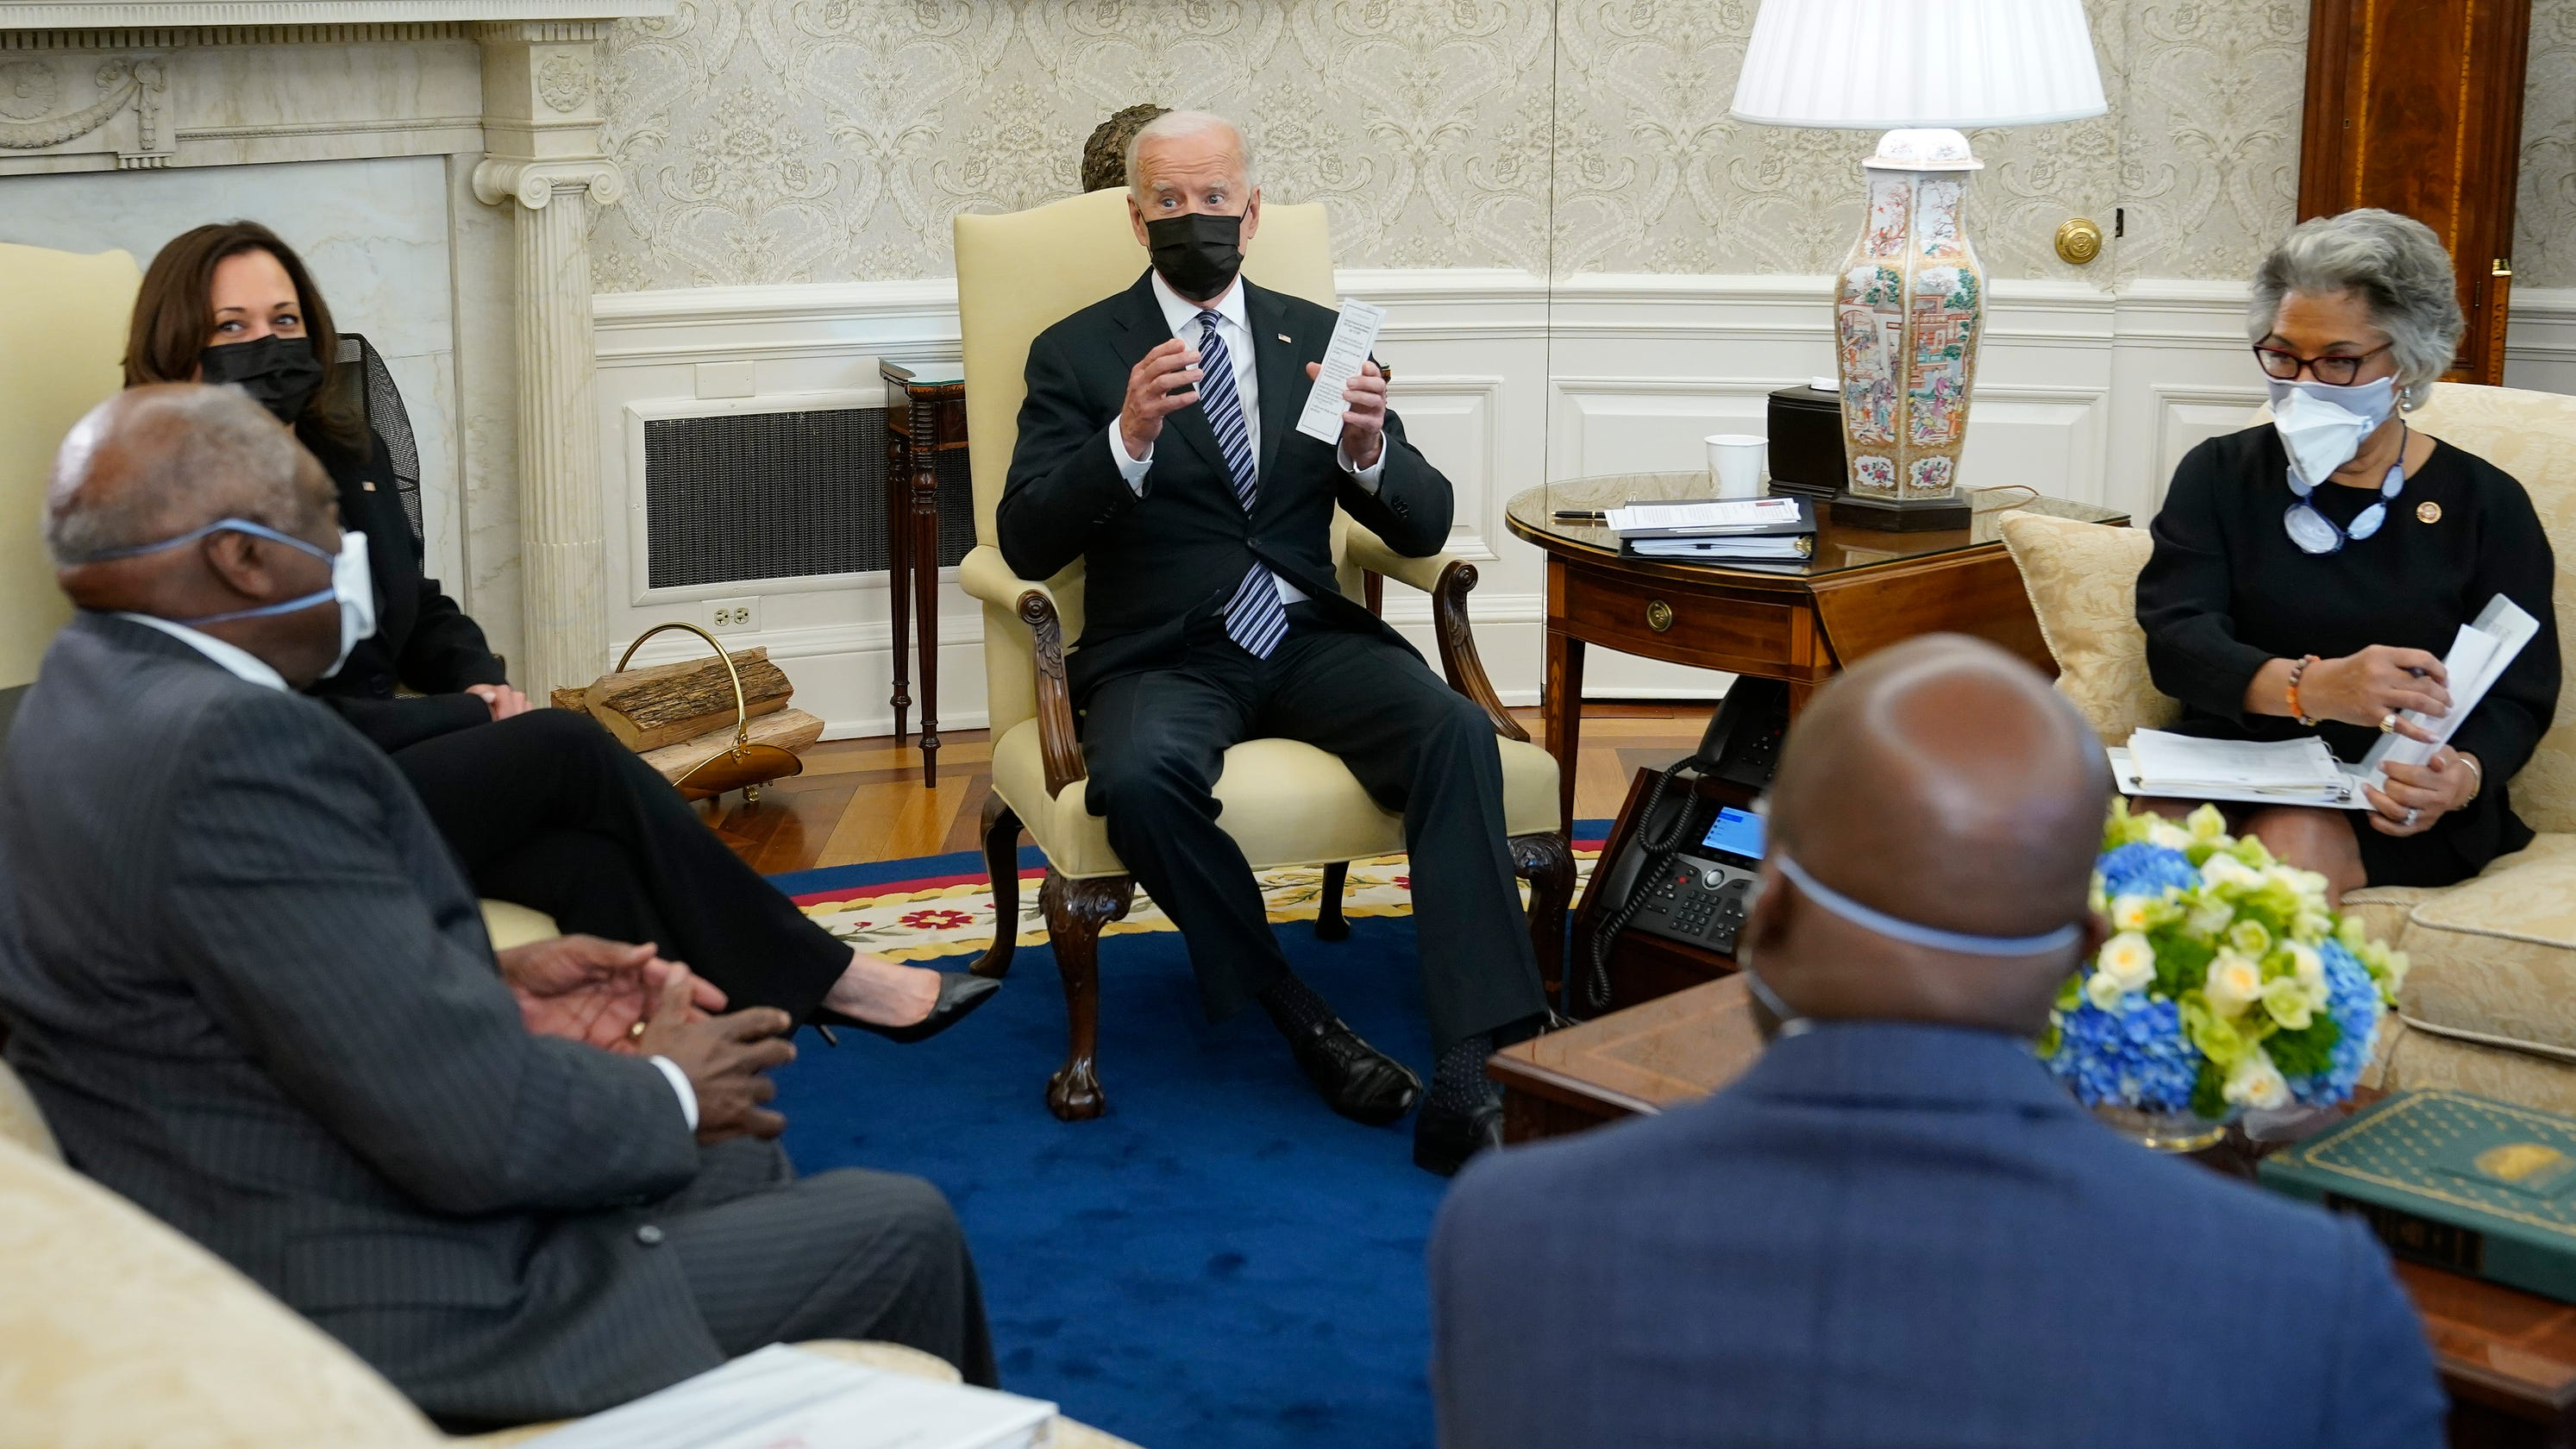 'This has been a tough week': Black lawmakers discuss racial inequities, COVID with Biden